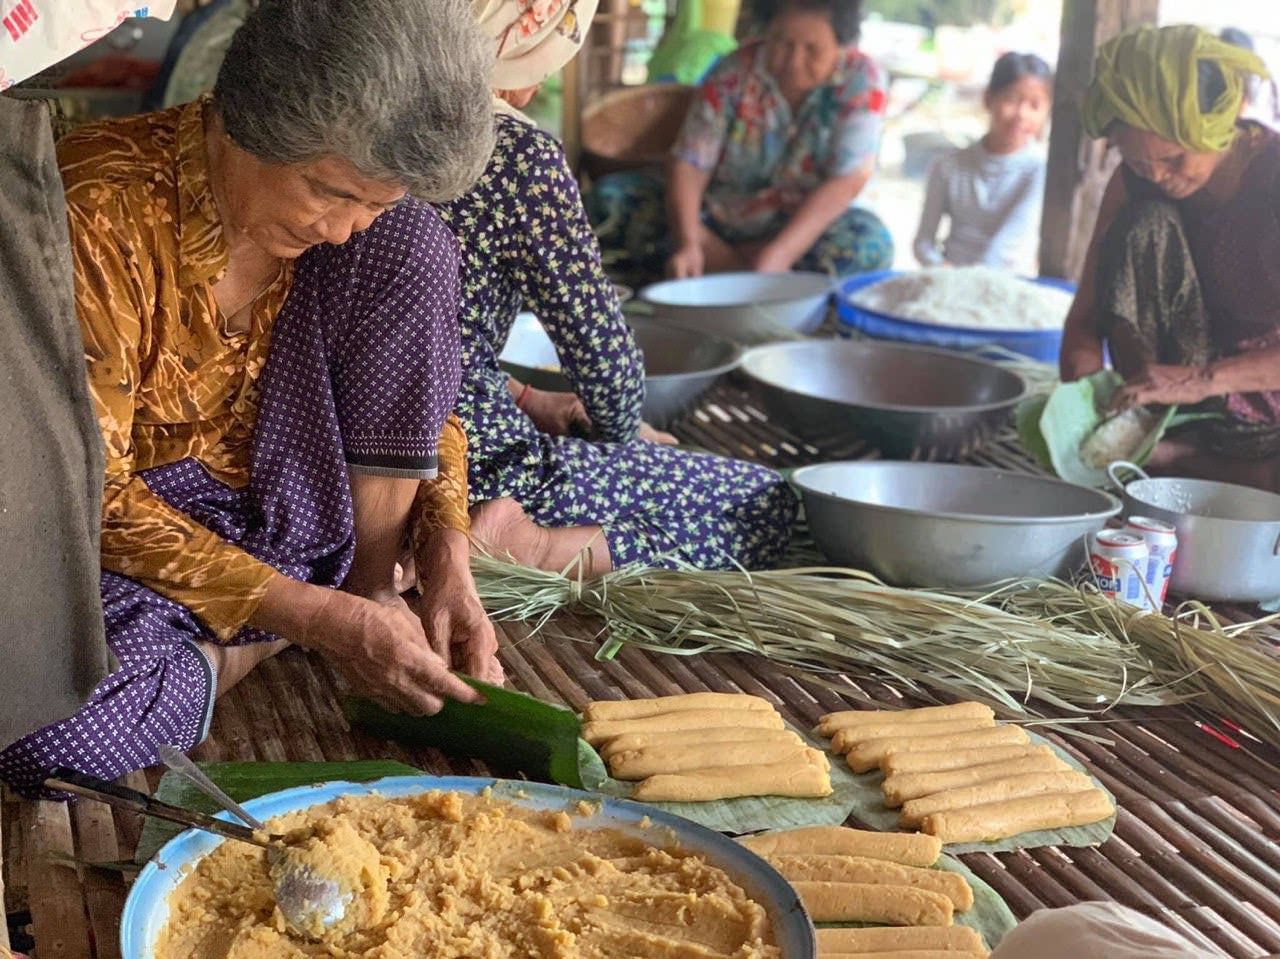 Making Orn Som is a community effort in Cambodia